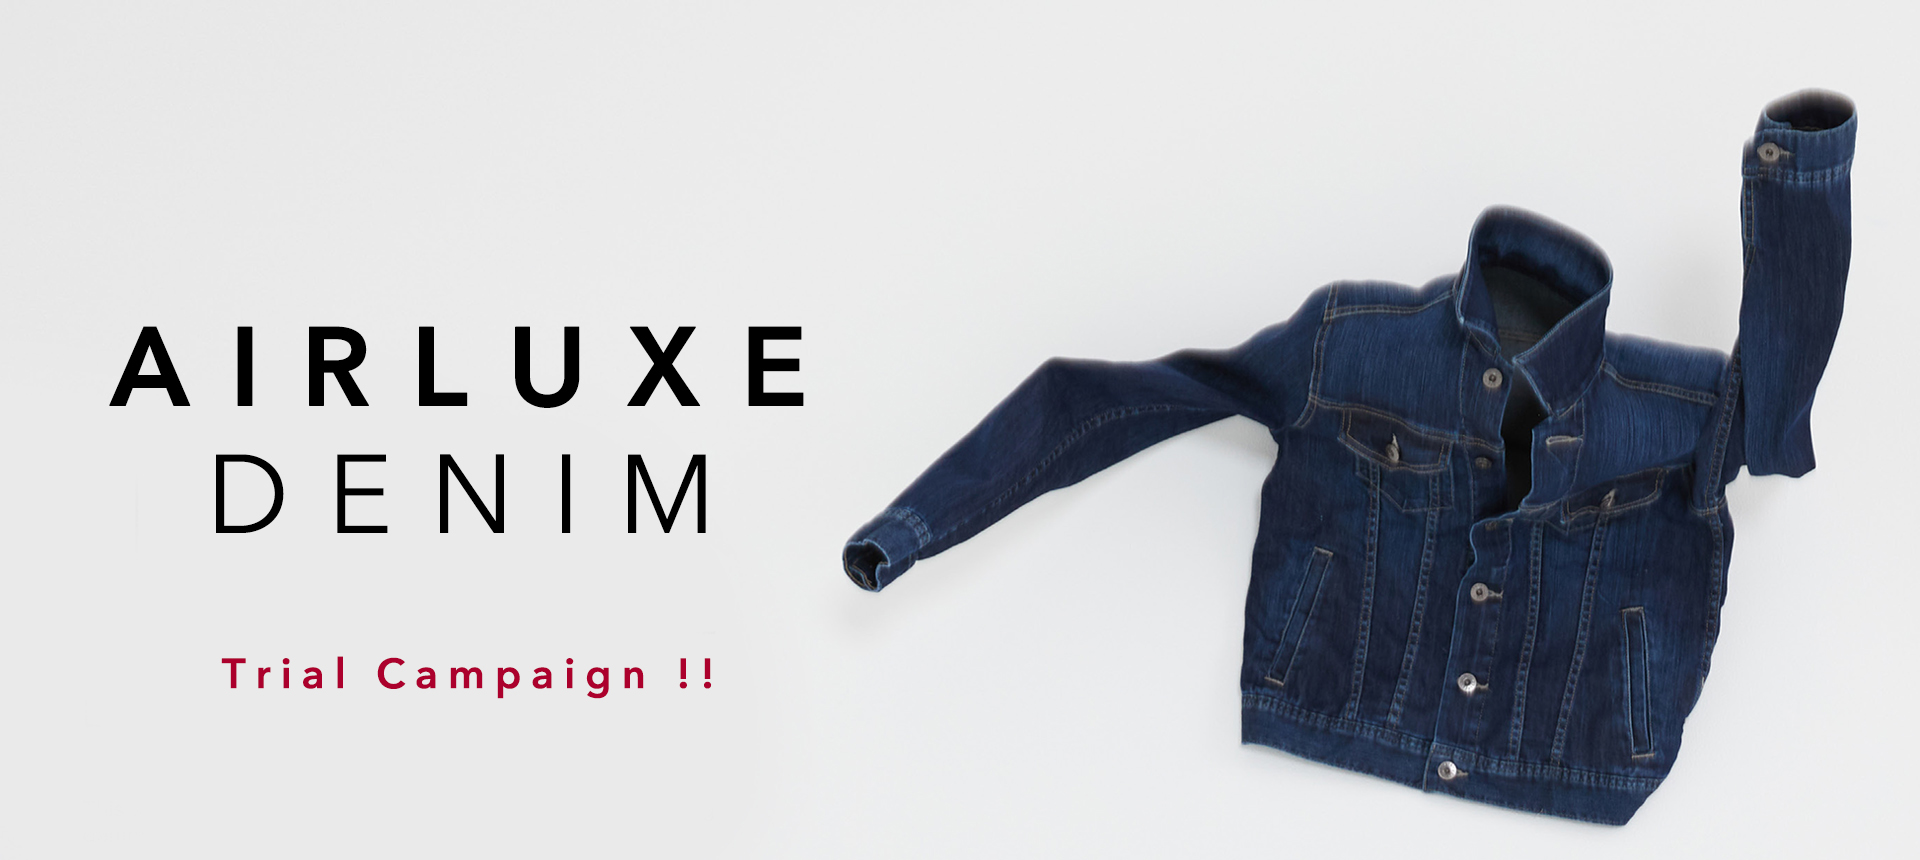 AIRLUXE